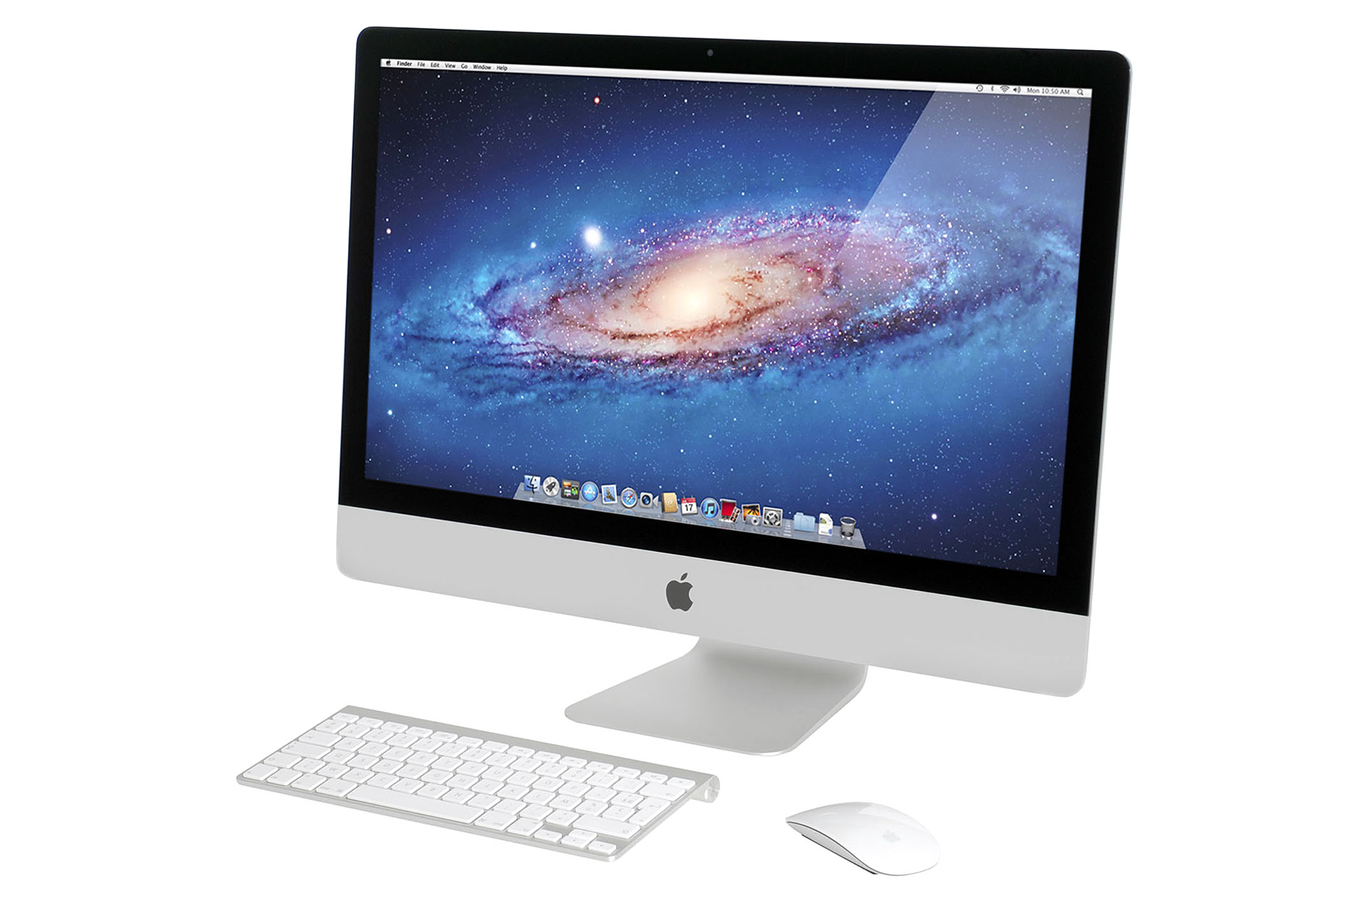 Imac Apple Imac Me086f A Imacme086f A 3785050 Darty